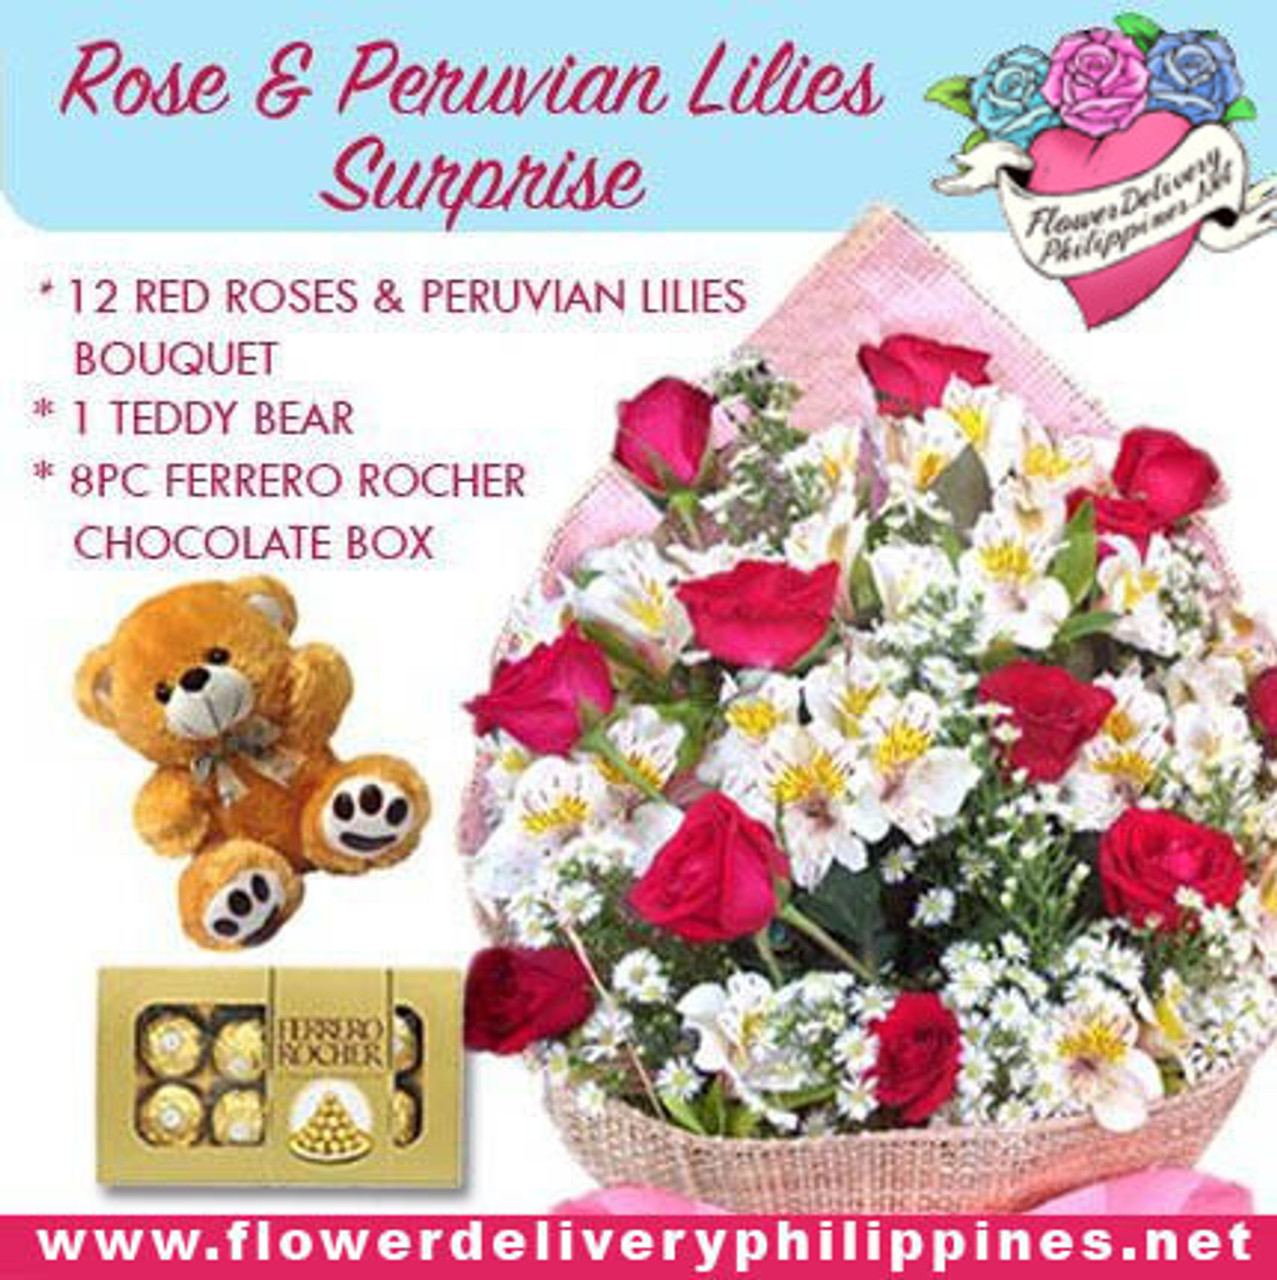 Rose and Peruvian Lilies Surprise